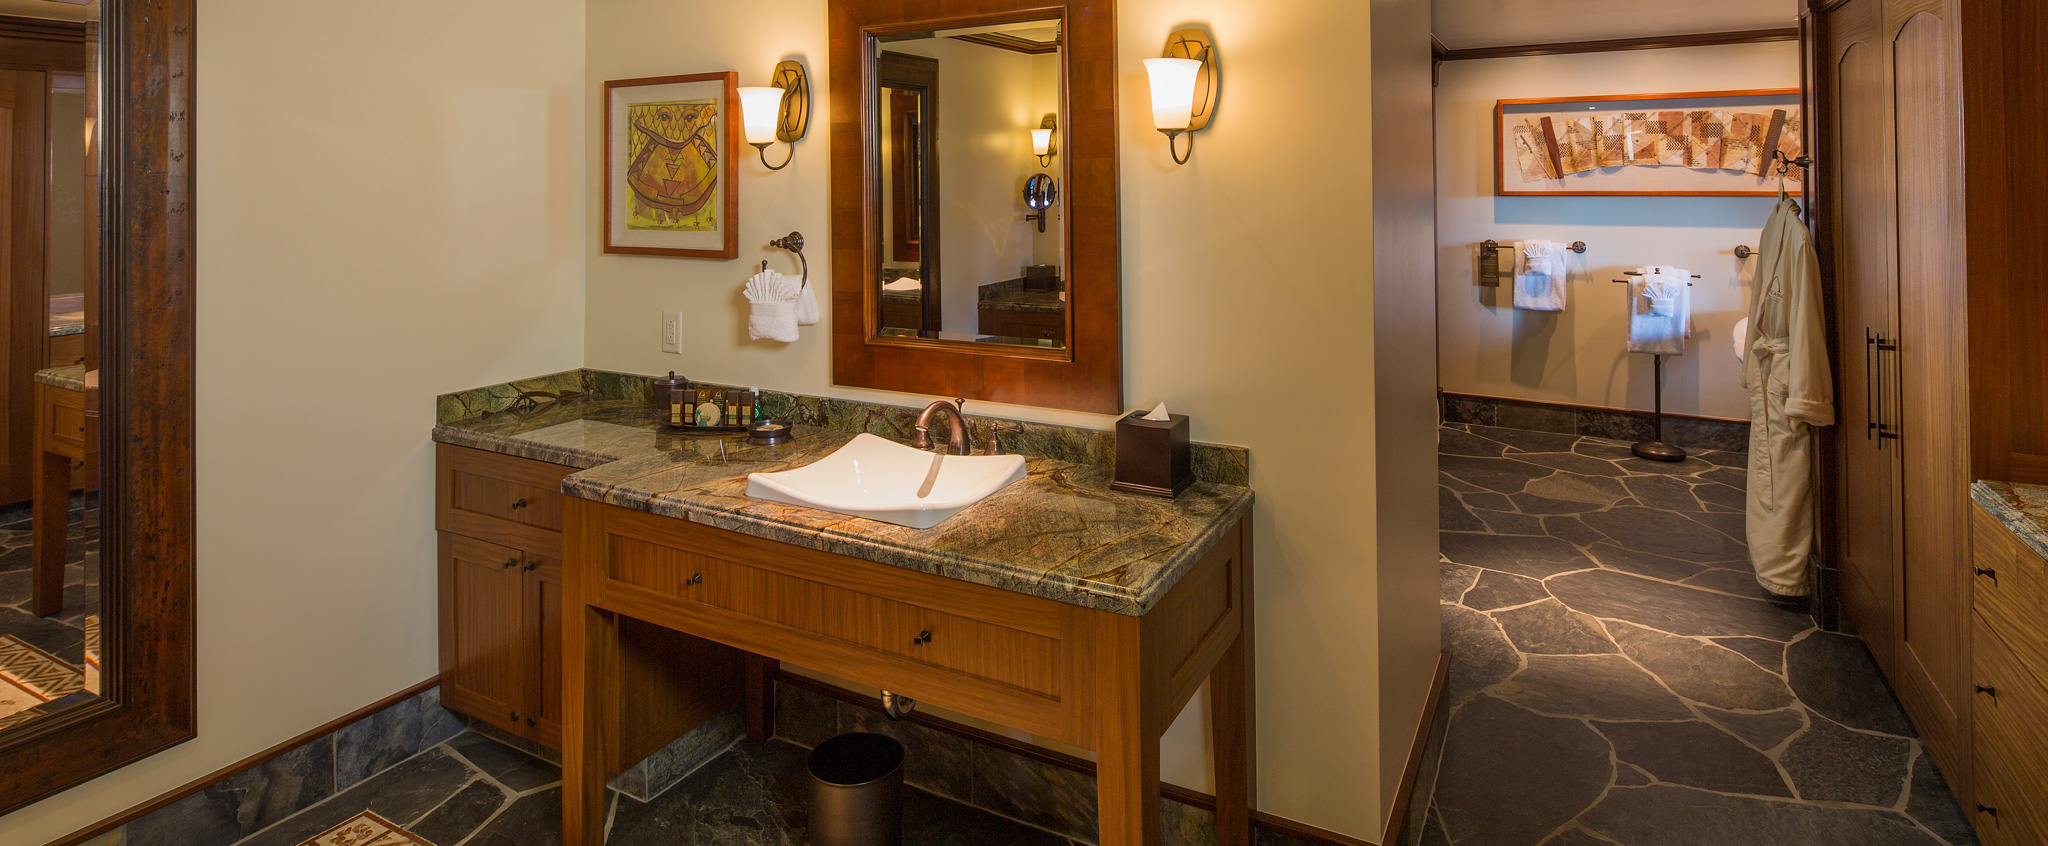 Two Bedroom Suite Aulani Hawaii Resort amp Spa : aulani rooms and offers 2 bedroom suite bathroom sink mirror hero g from resorts.disney.go.com size 2048 x 846 jpeg 568kB